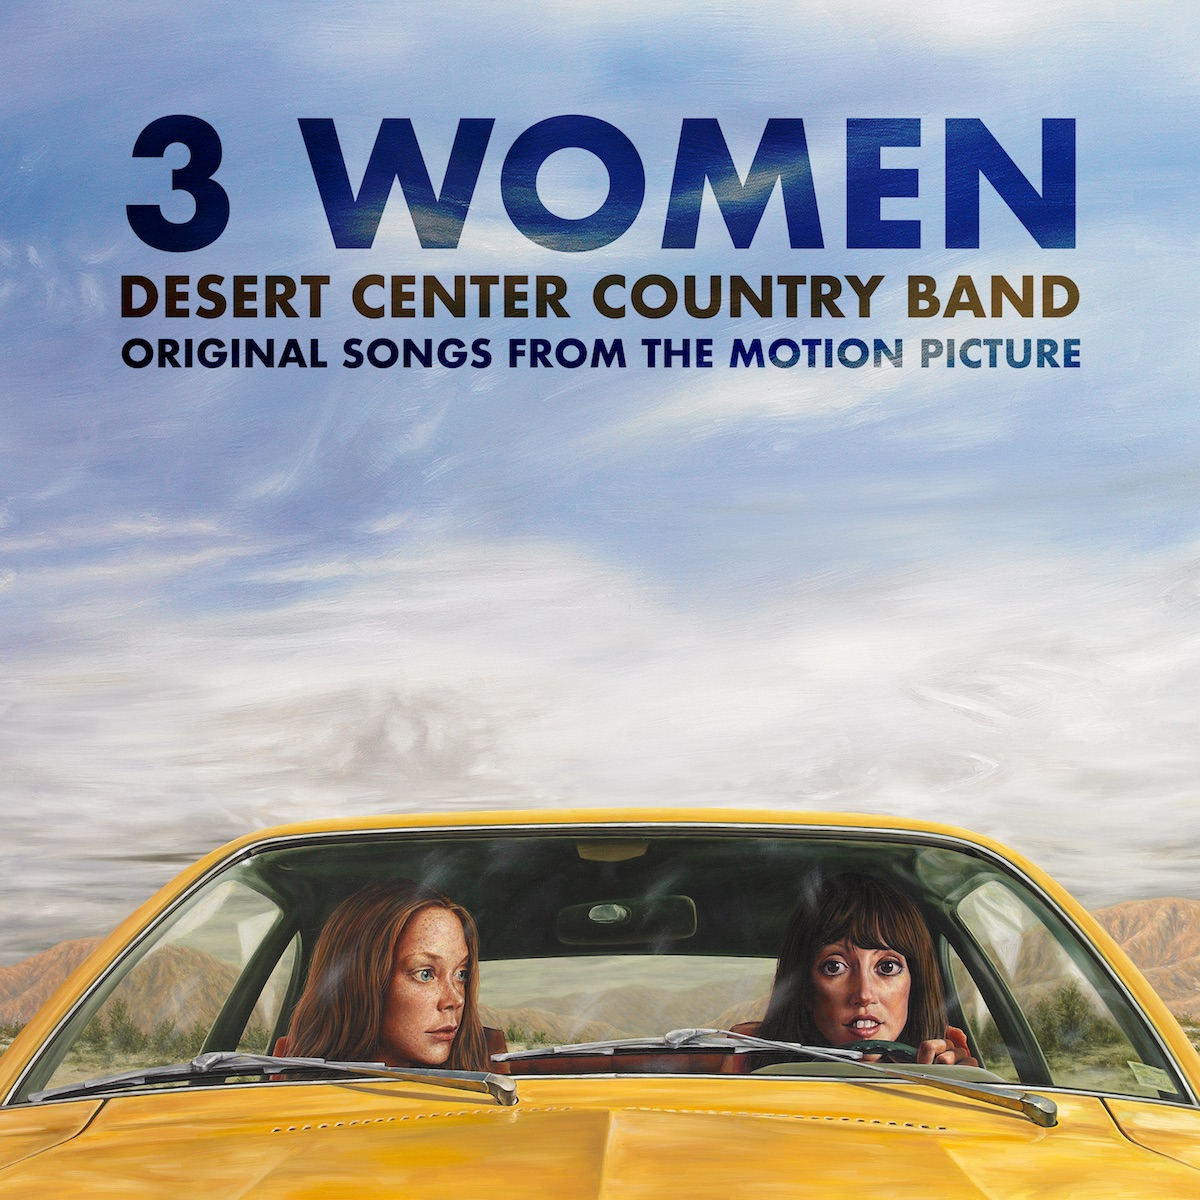 3 Women: Original Songs from the Motion Picture